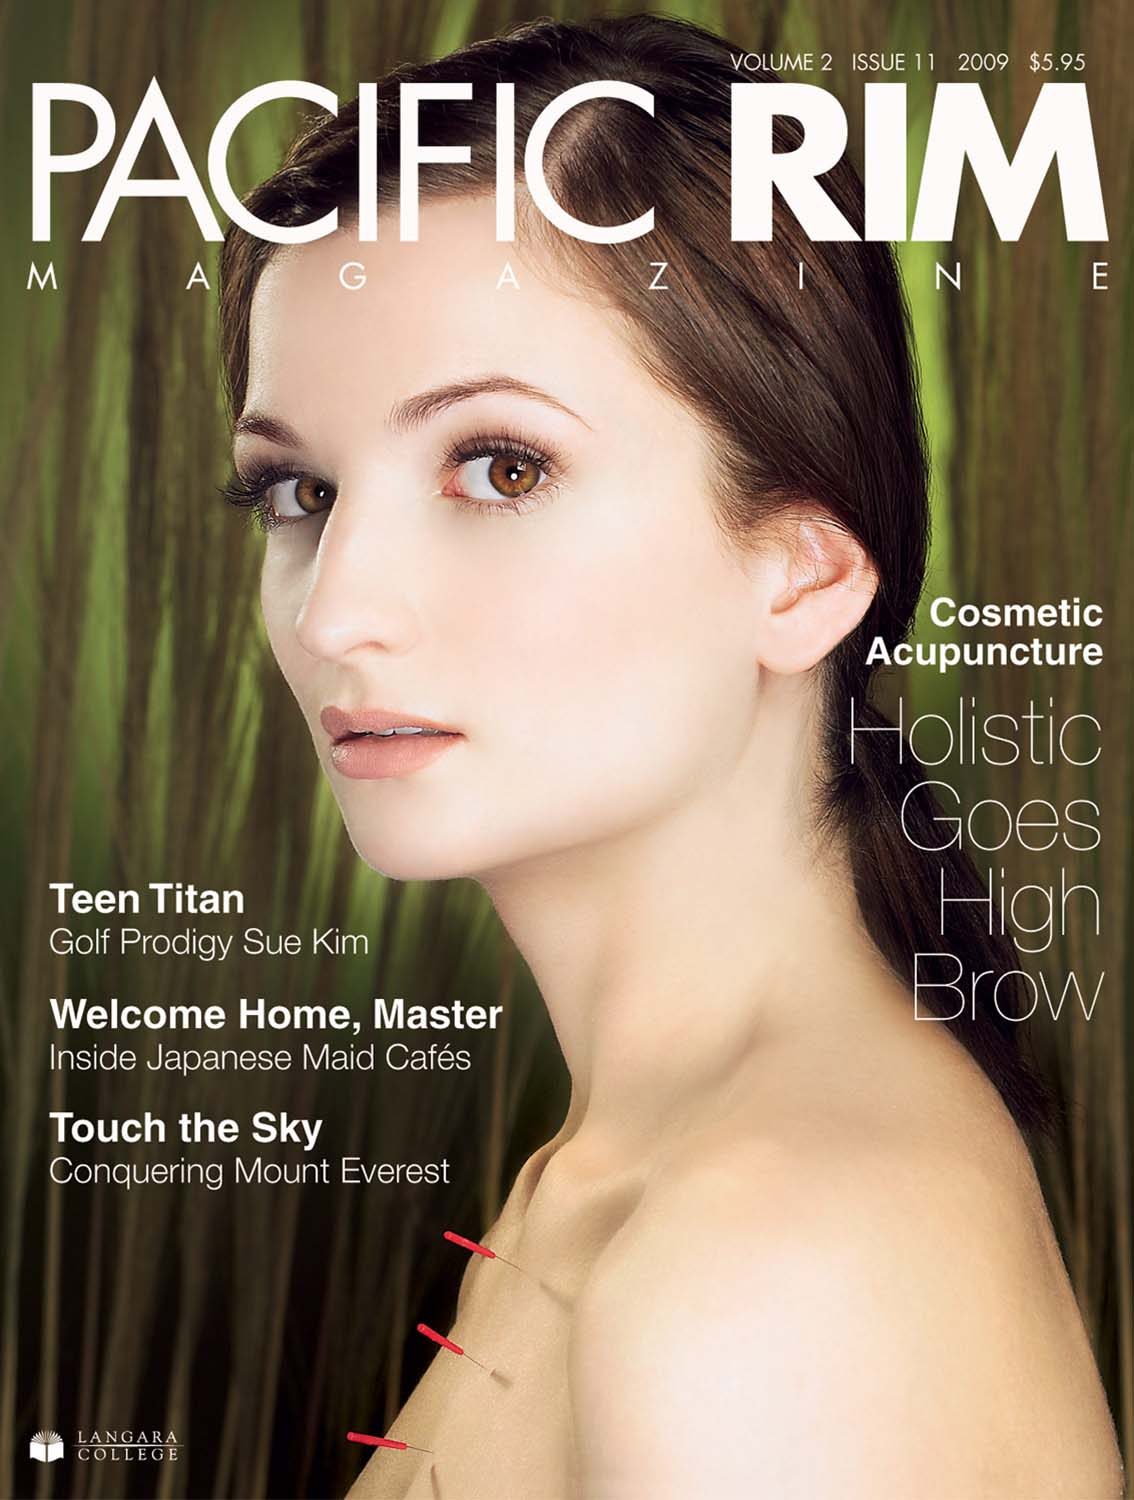 "2009 Pacific Rim Cover. ""Cosmetic Acupuncture"" Cover story. Image of woman's face."